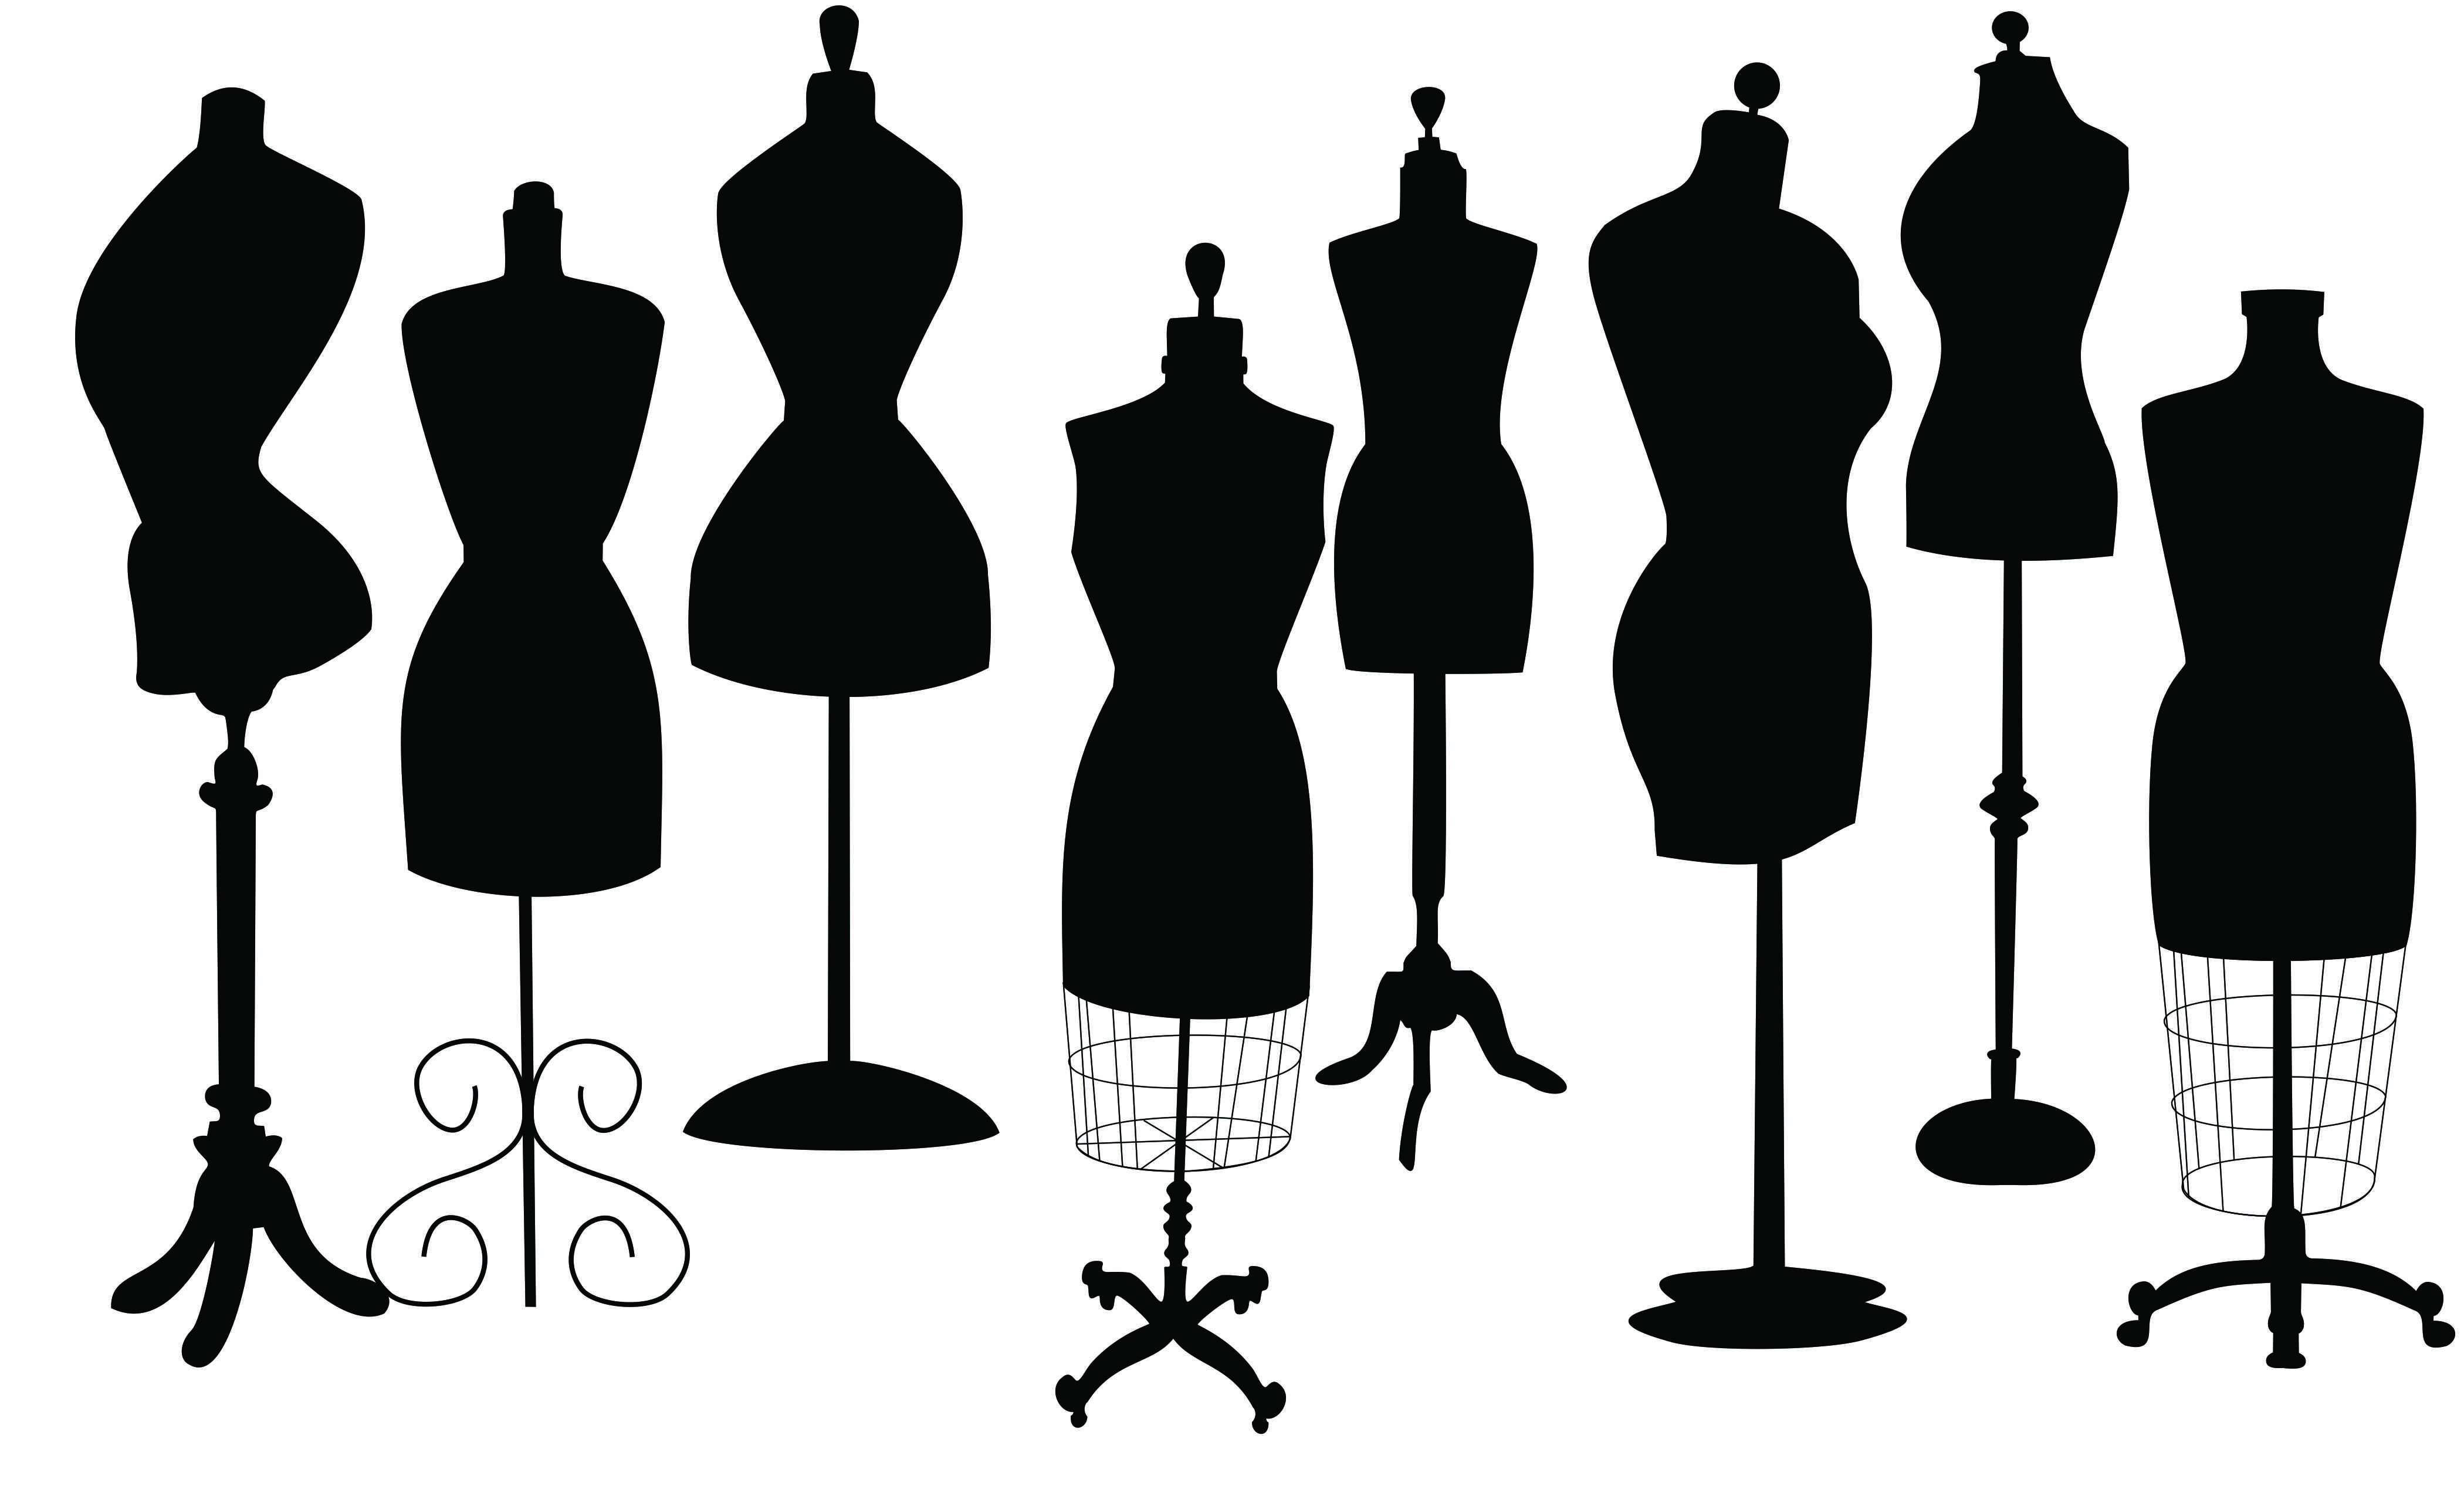 4200x2550 I Made Mannequin Silhouette By Corel Draw Technical Drawing